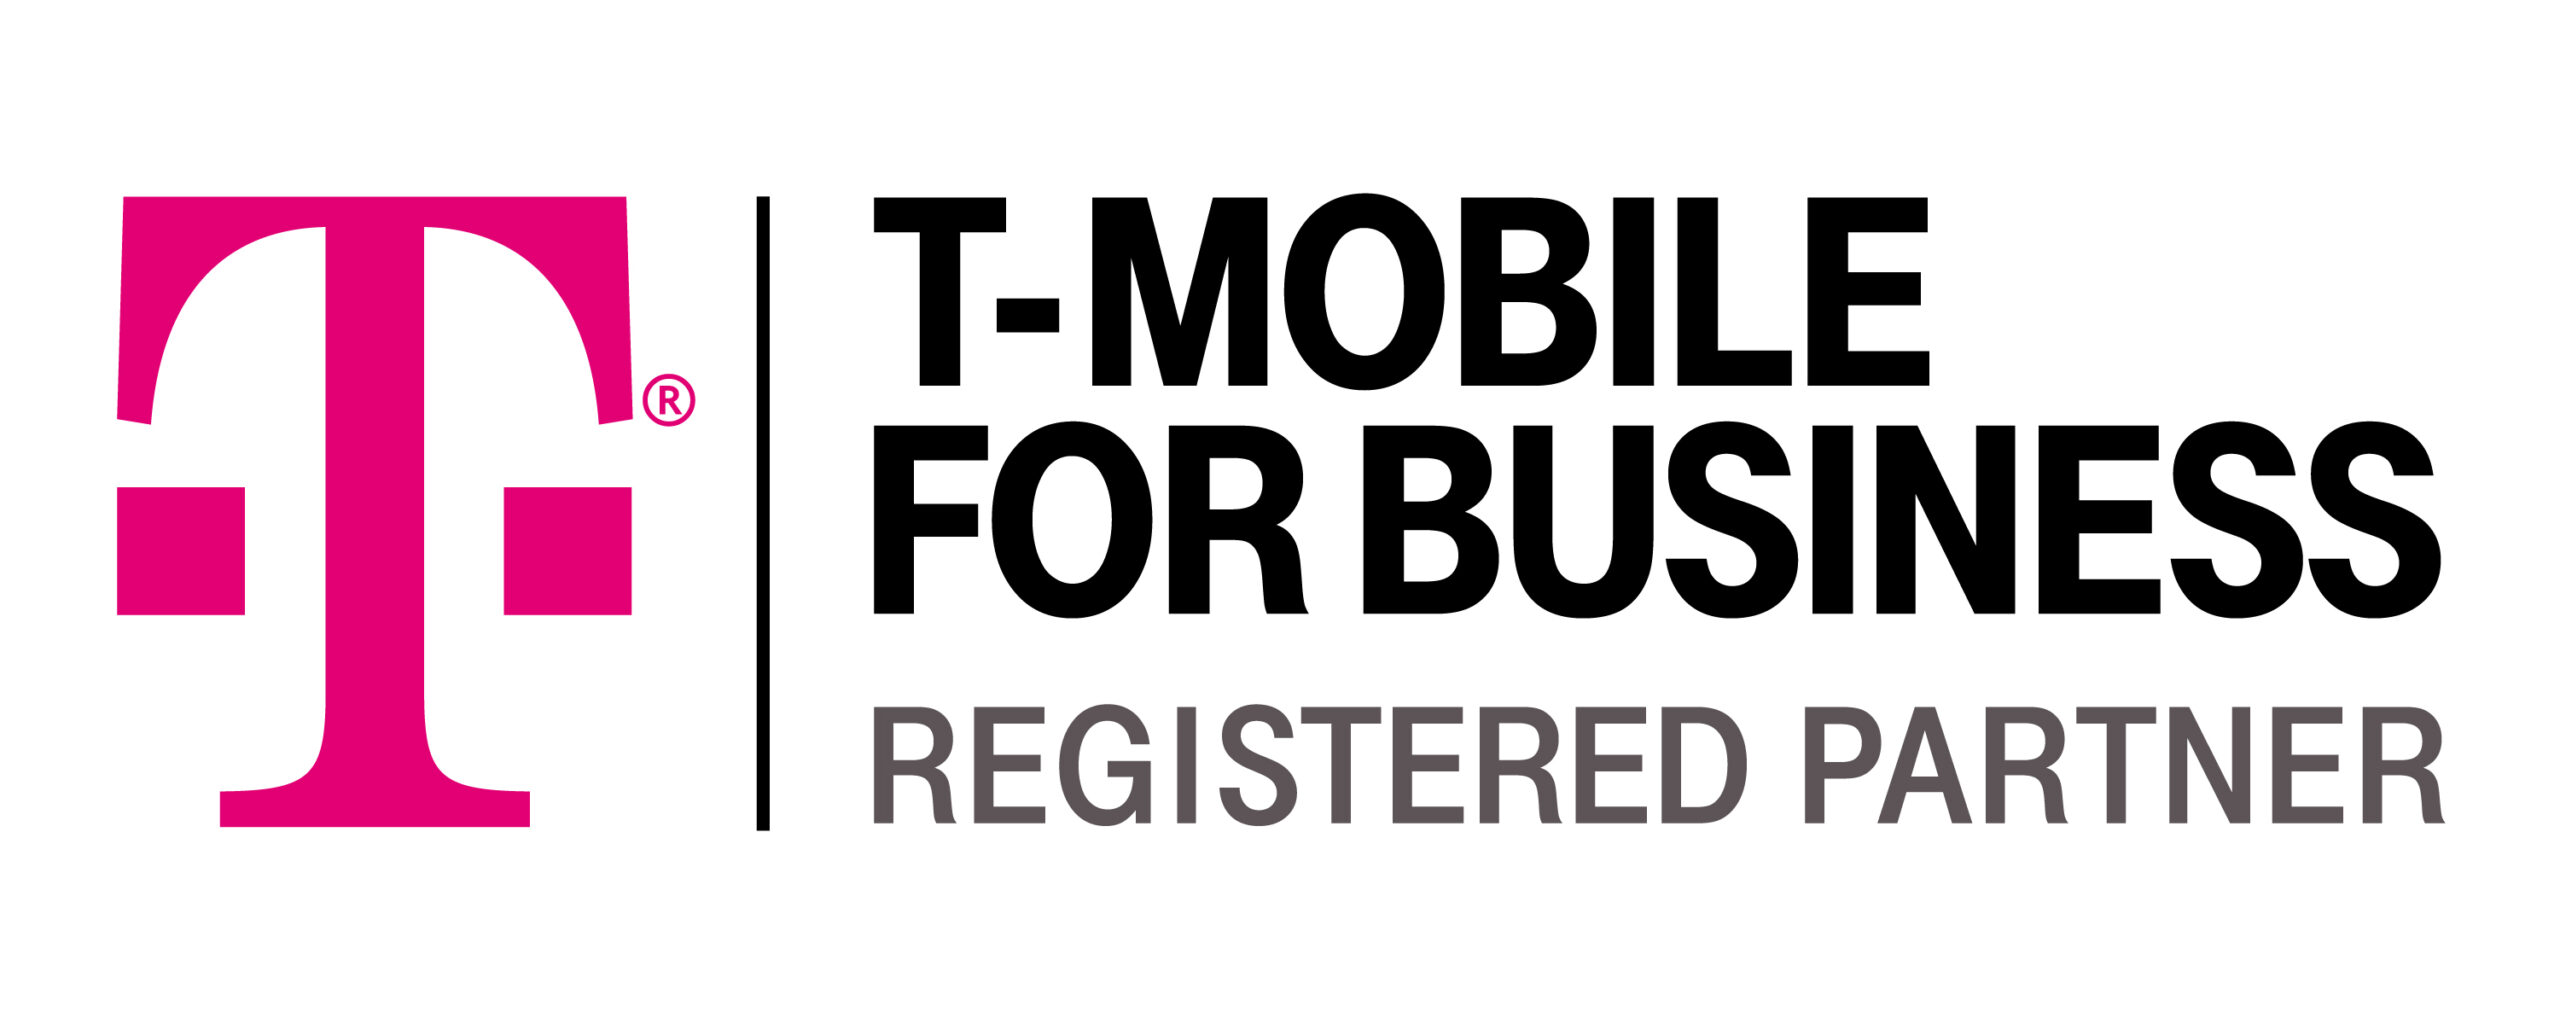 T-Mobile for Business Partner